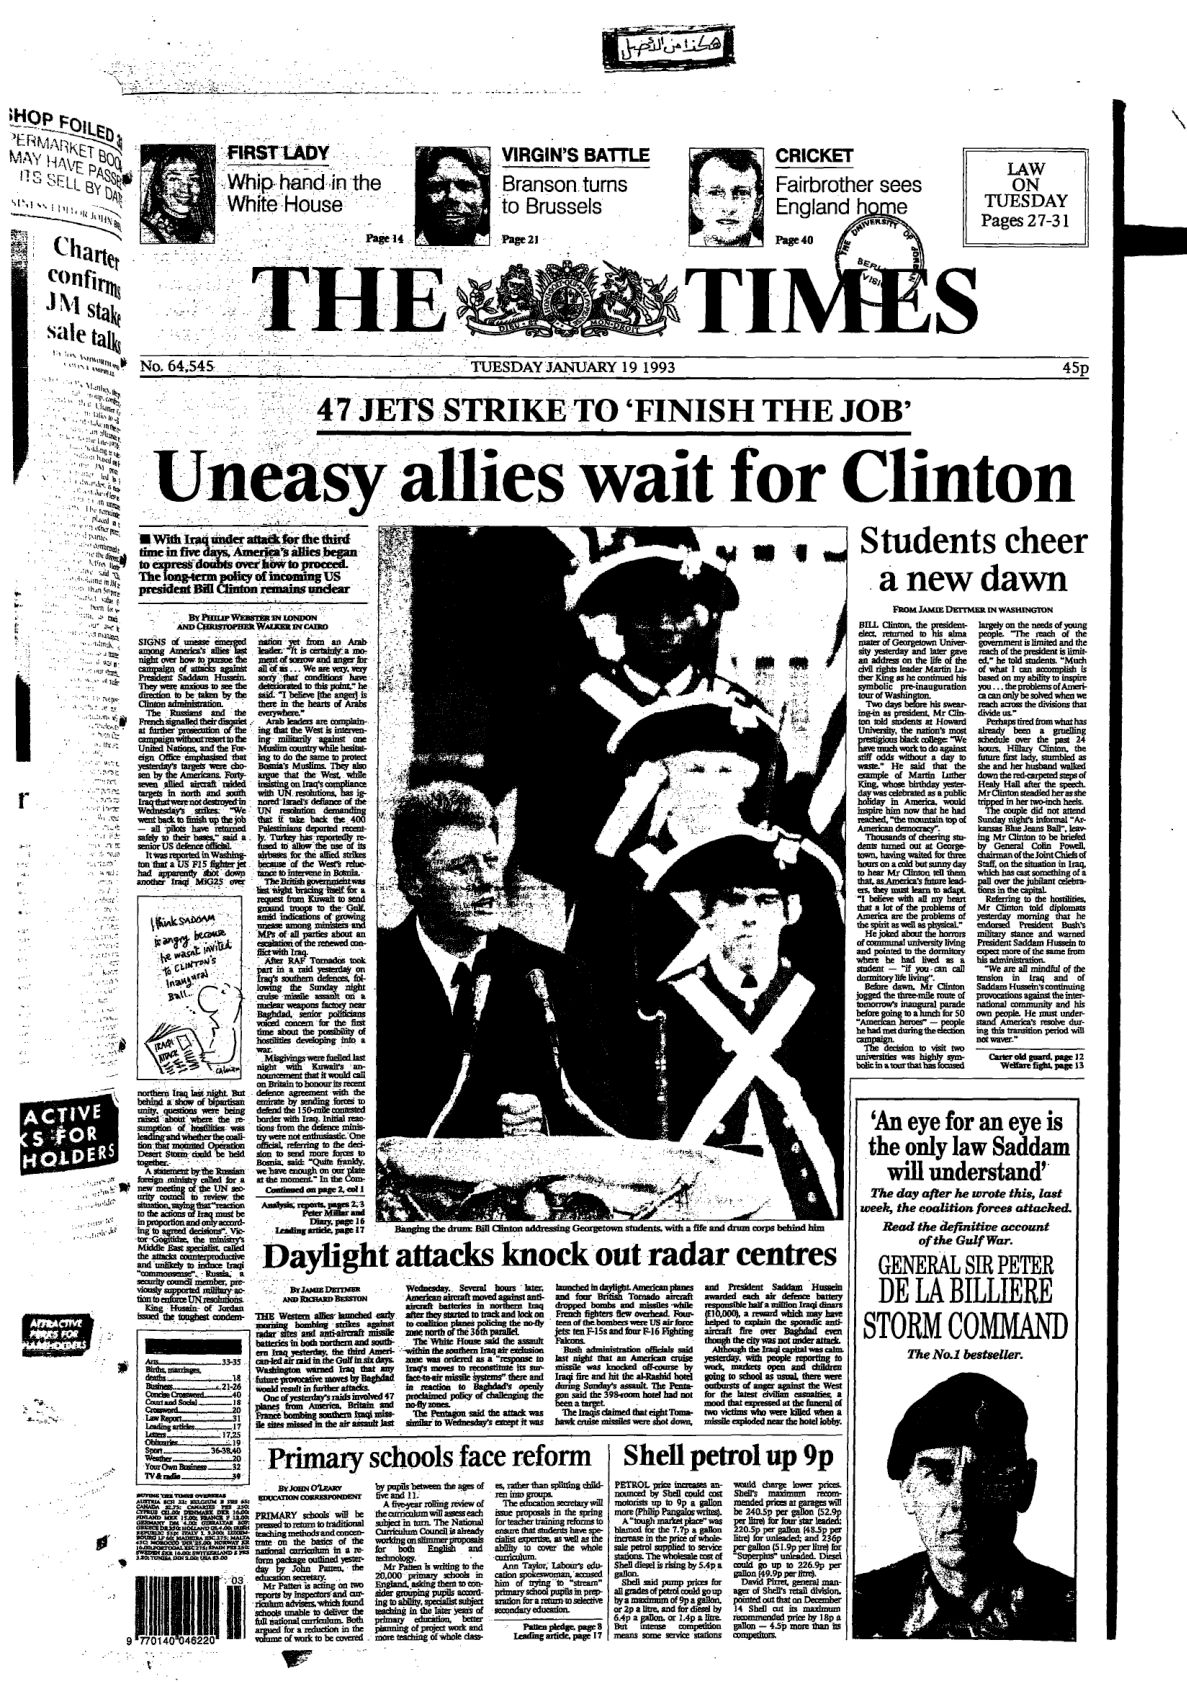 The Times Issue No. 64545. 1993-01-19, UK